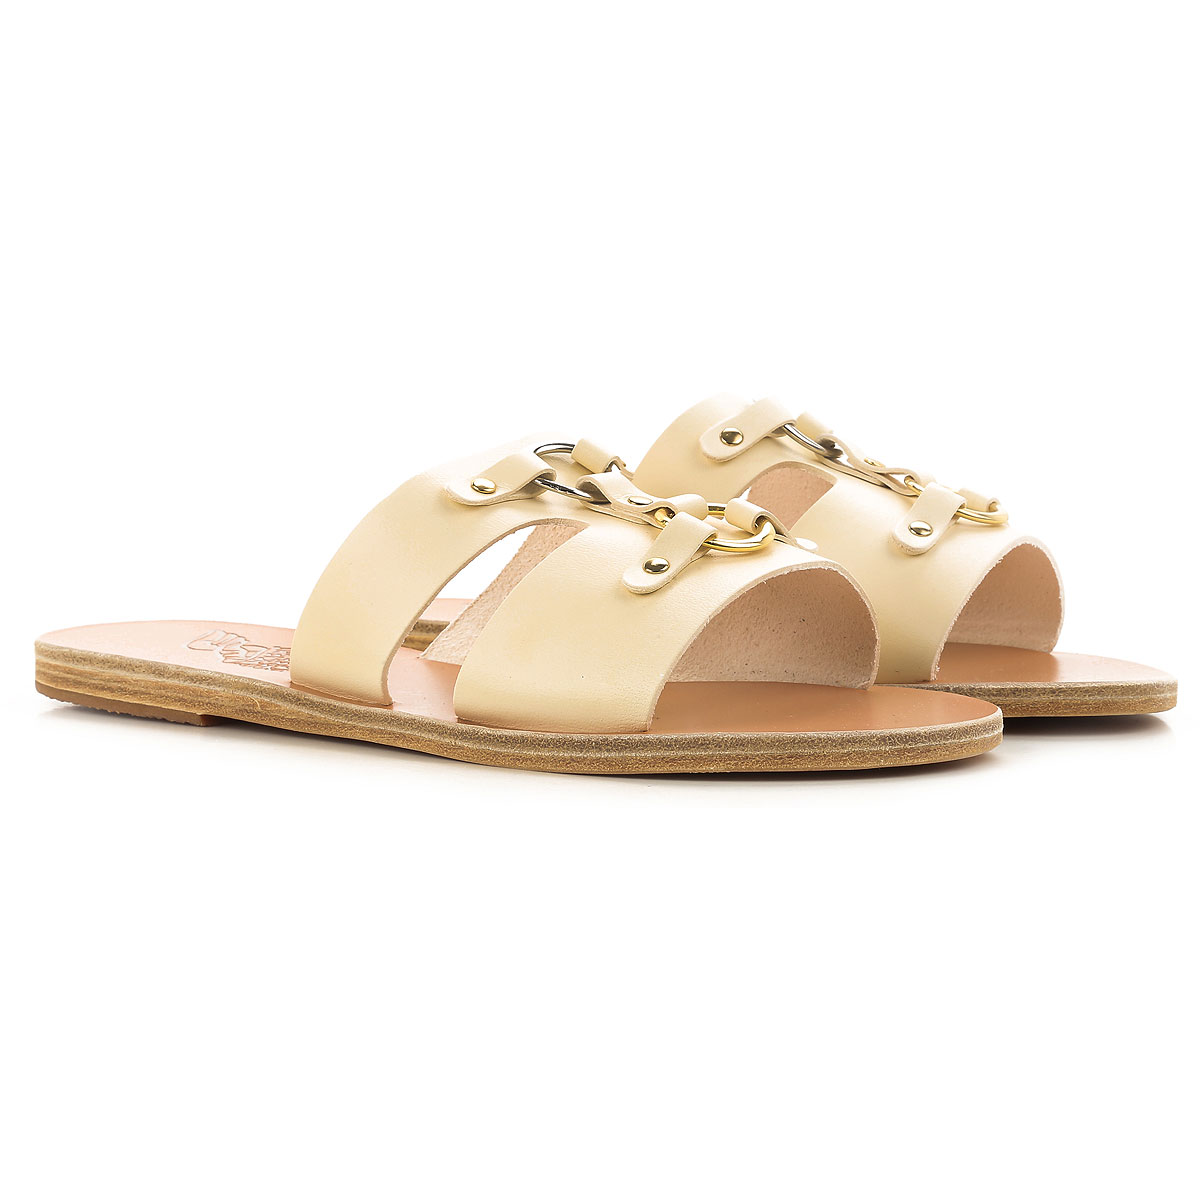 Image of Ancient Greek Sandals Sandals for Women On Sale in Outlet, Off White, Leather, 2017, 8 9